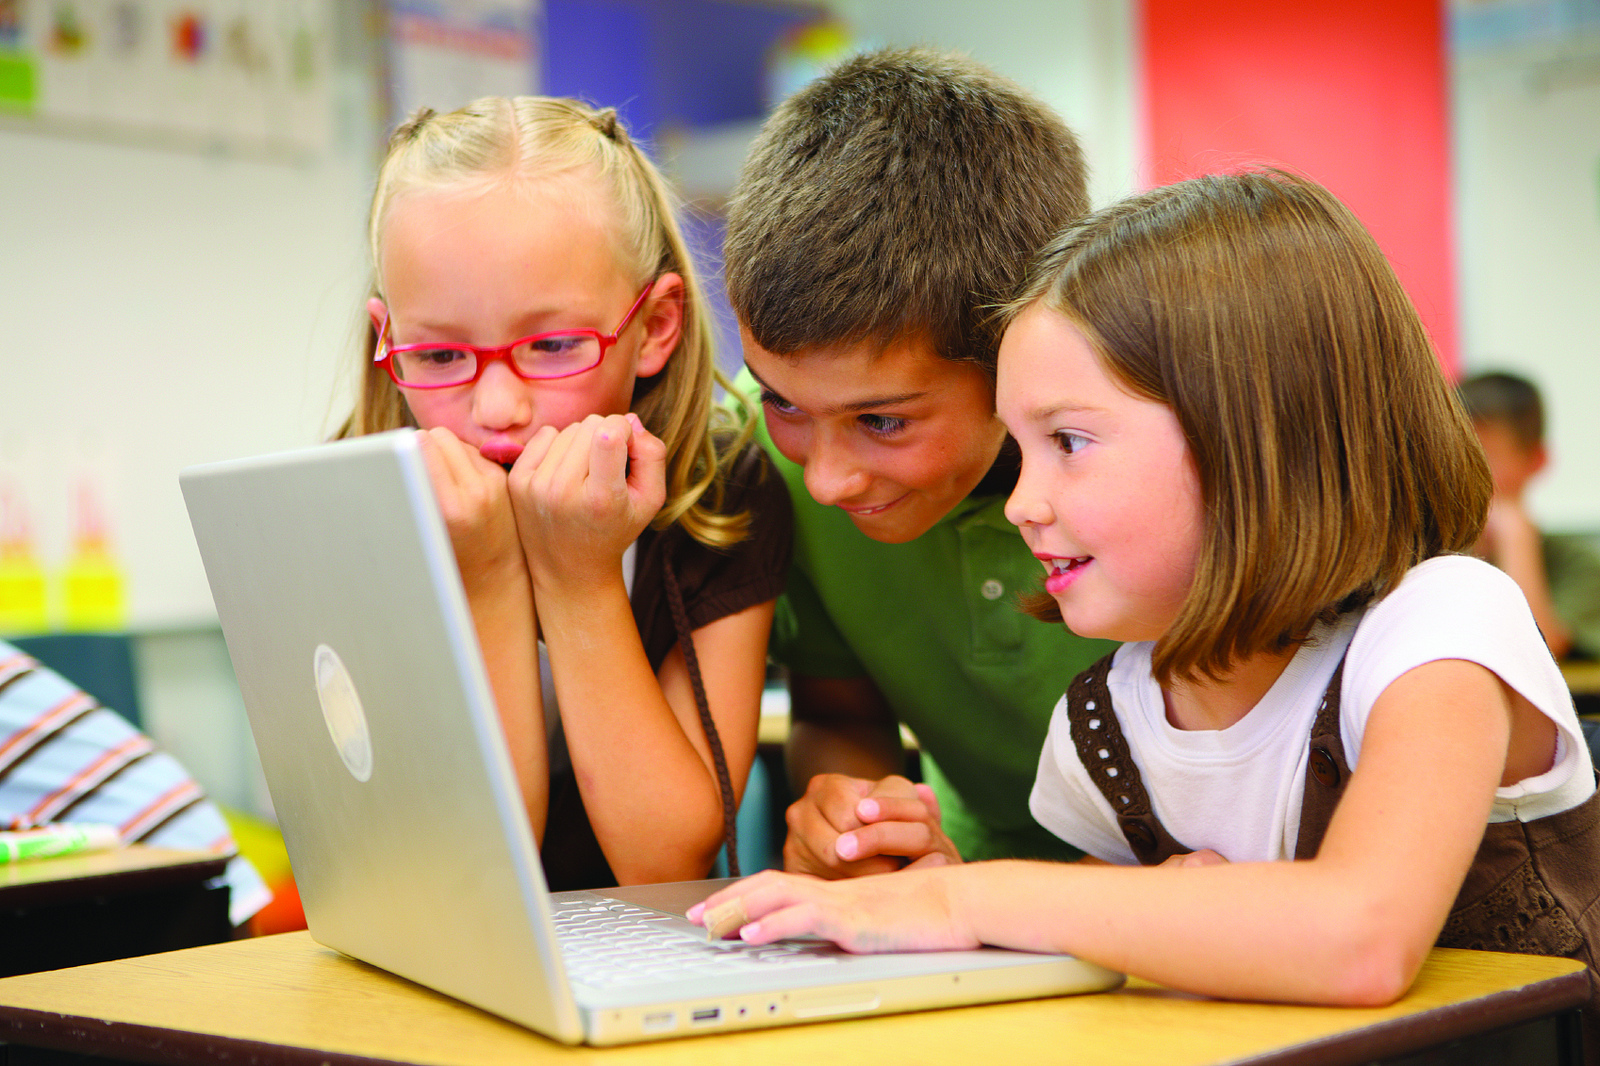 Educational games are playing an increasingly big  role in schools.